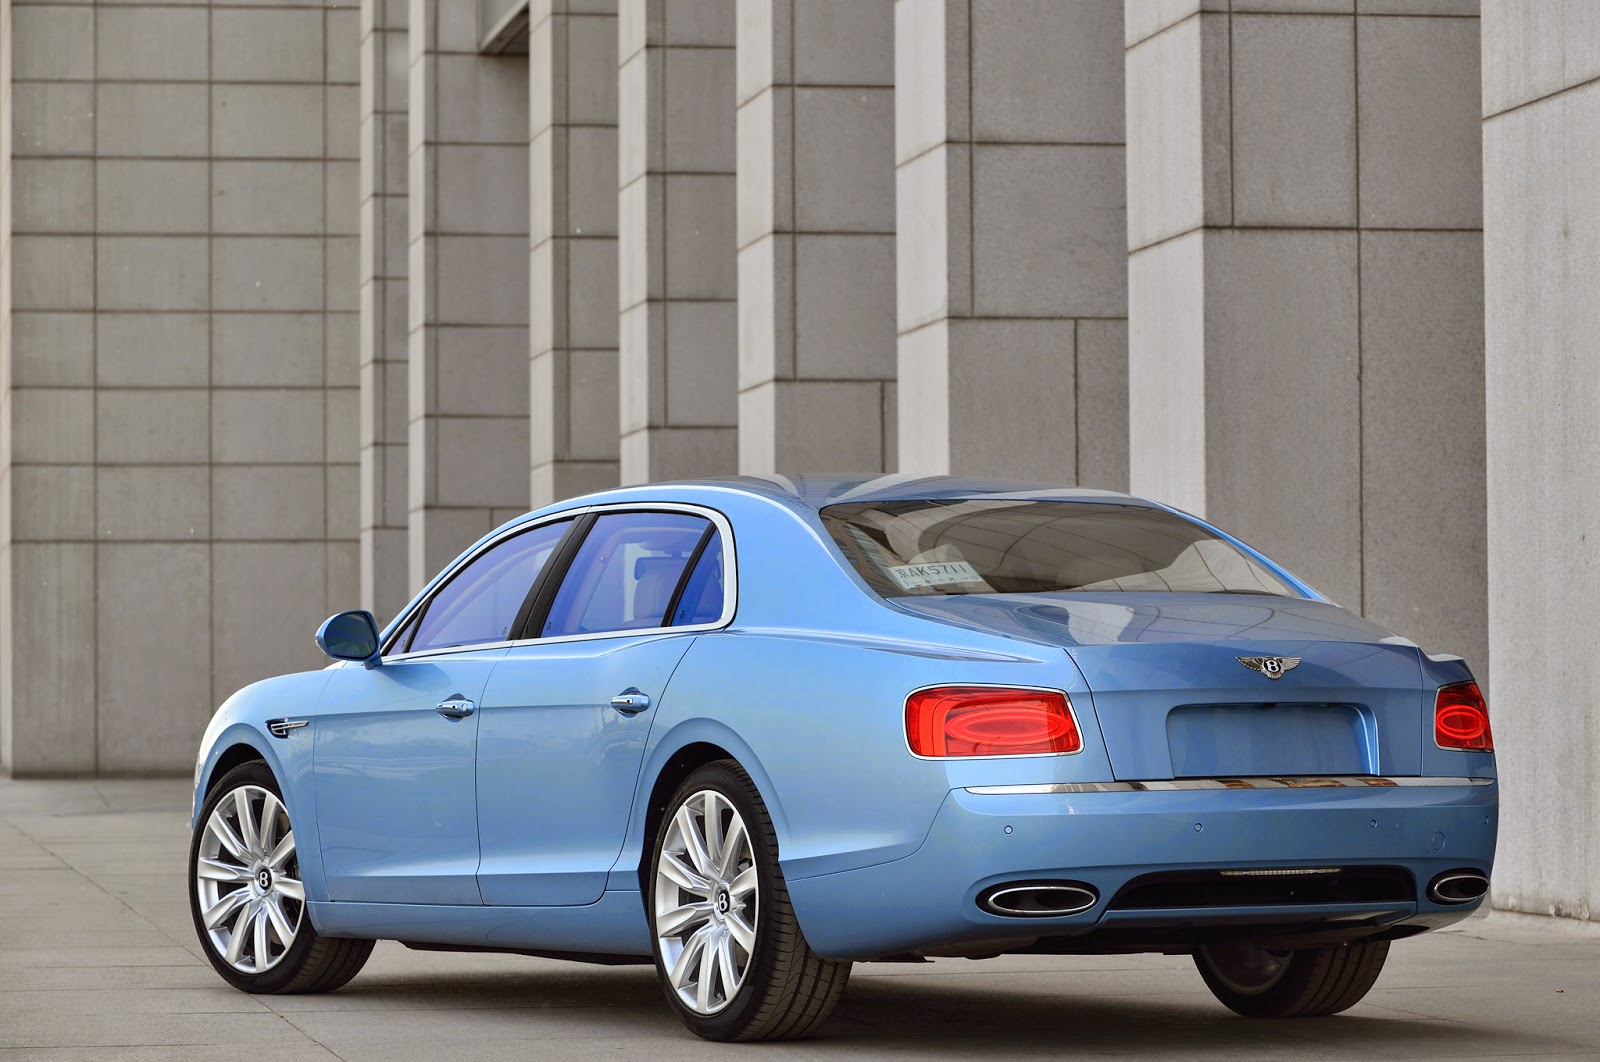 Bentley Flying Spur V8 Back View Image